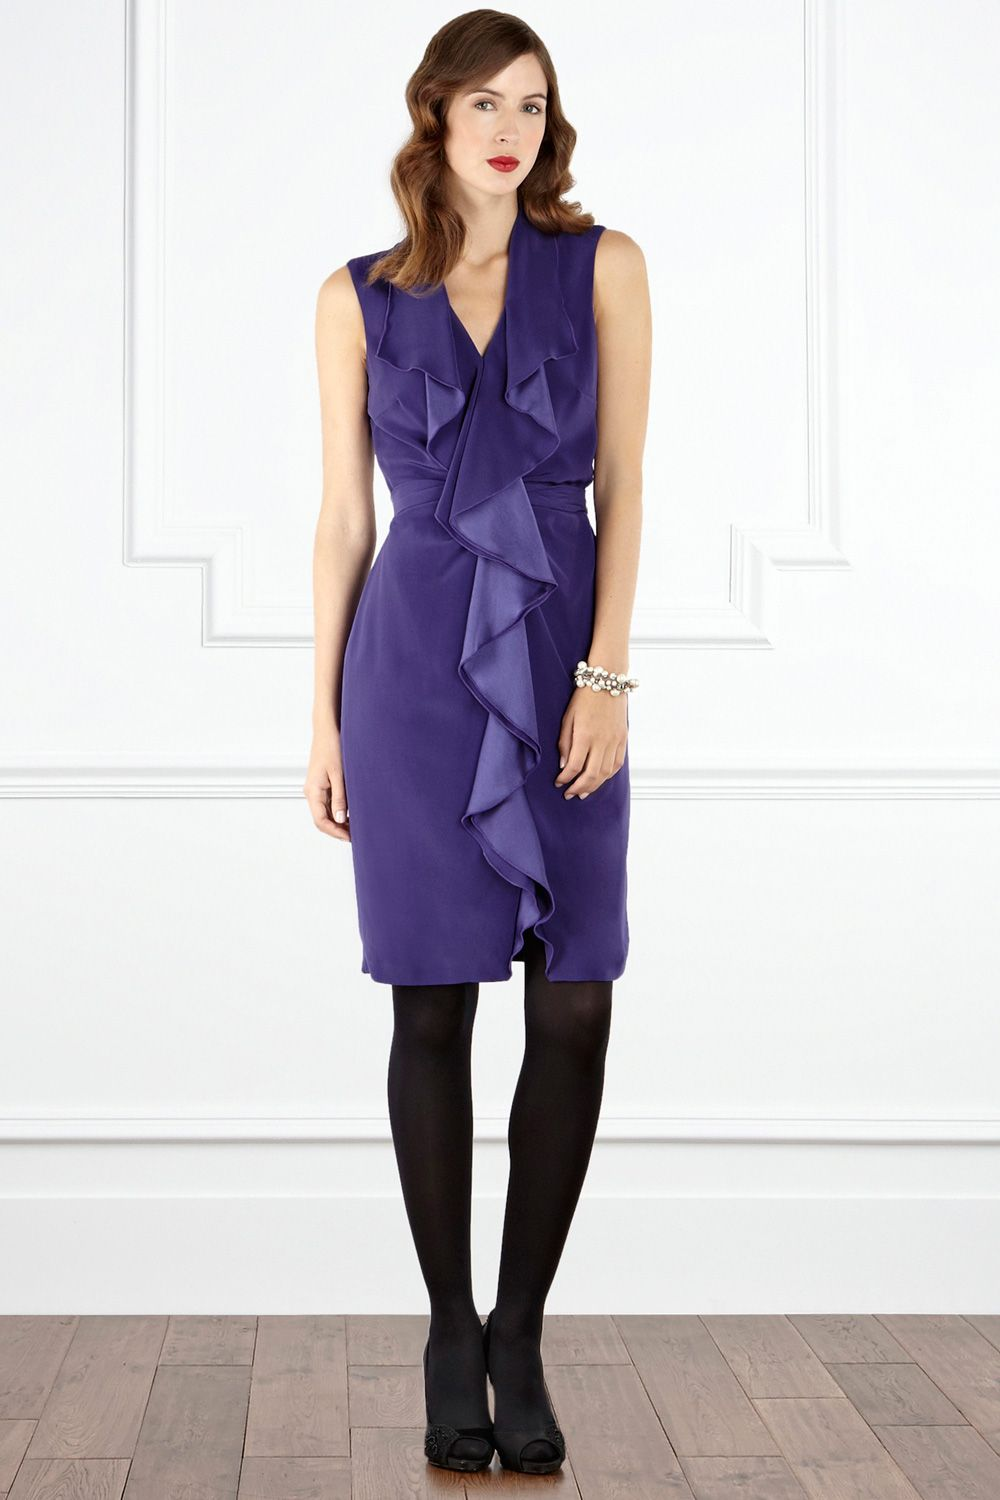 Dress to wear to a wedding as a guest in june  A personal favorite as I have personally bought this frock for my